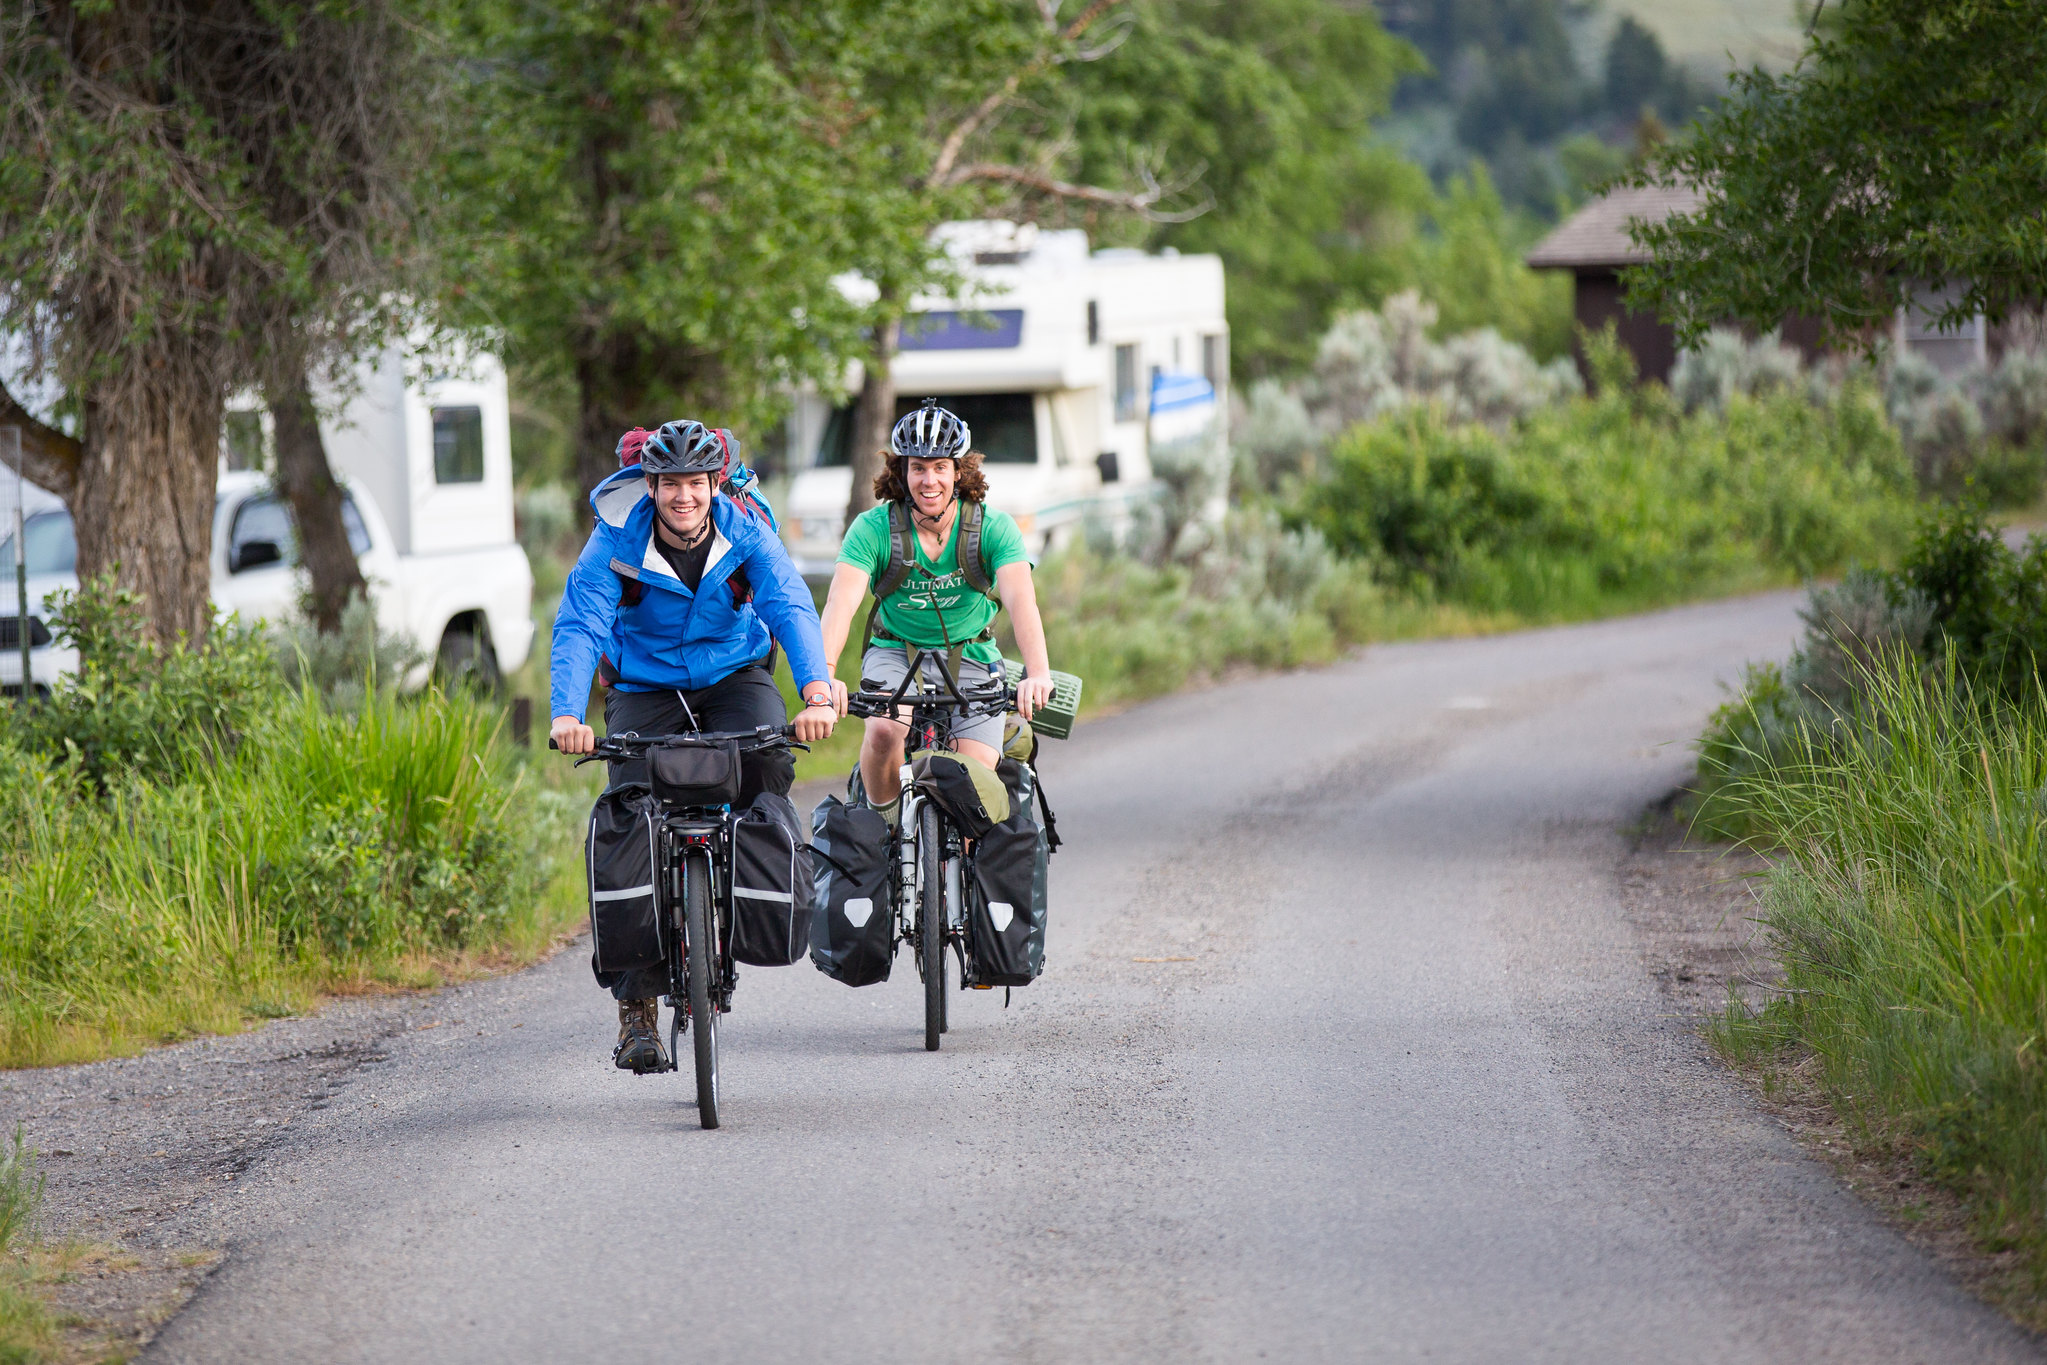 Electric bicycles in Glacier, Grand Teton, Yellowstone, and the National Elk Refuge - Yellowstone National Park (U.S. National Park Service)